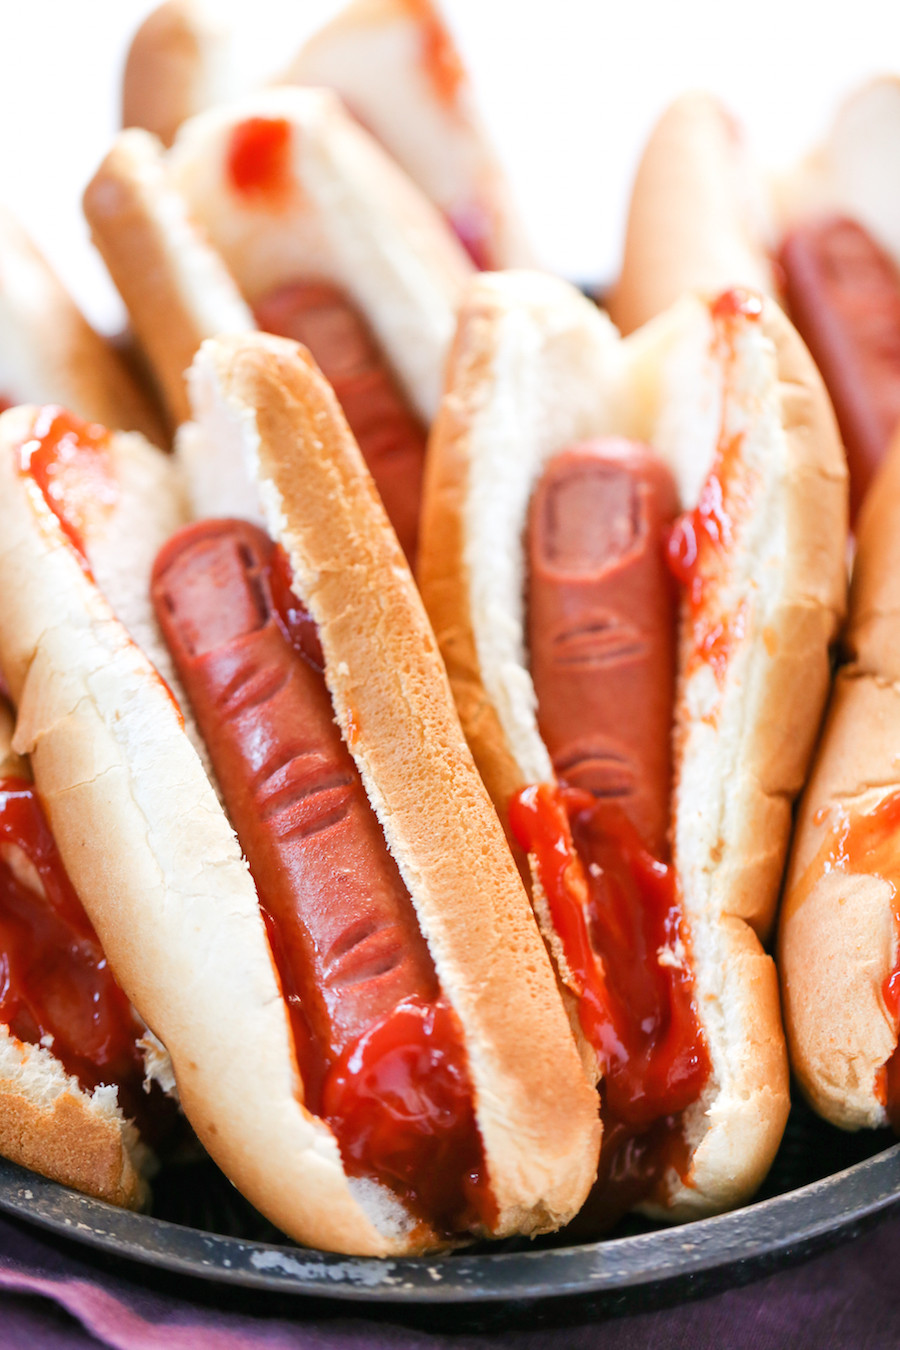 Hot Dogs Halloween  Bloody Finger Hot Dogs for Halloween